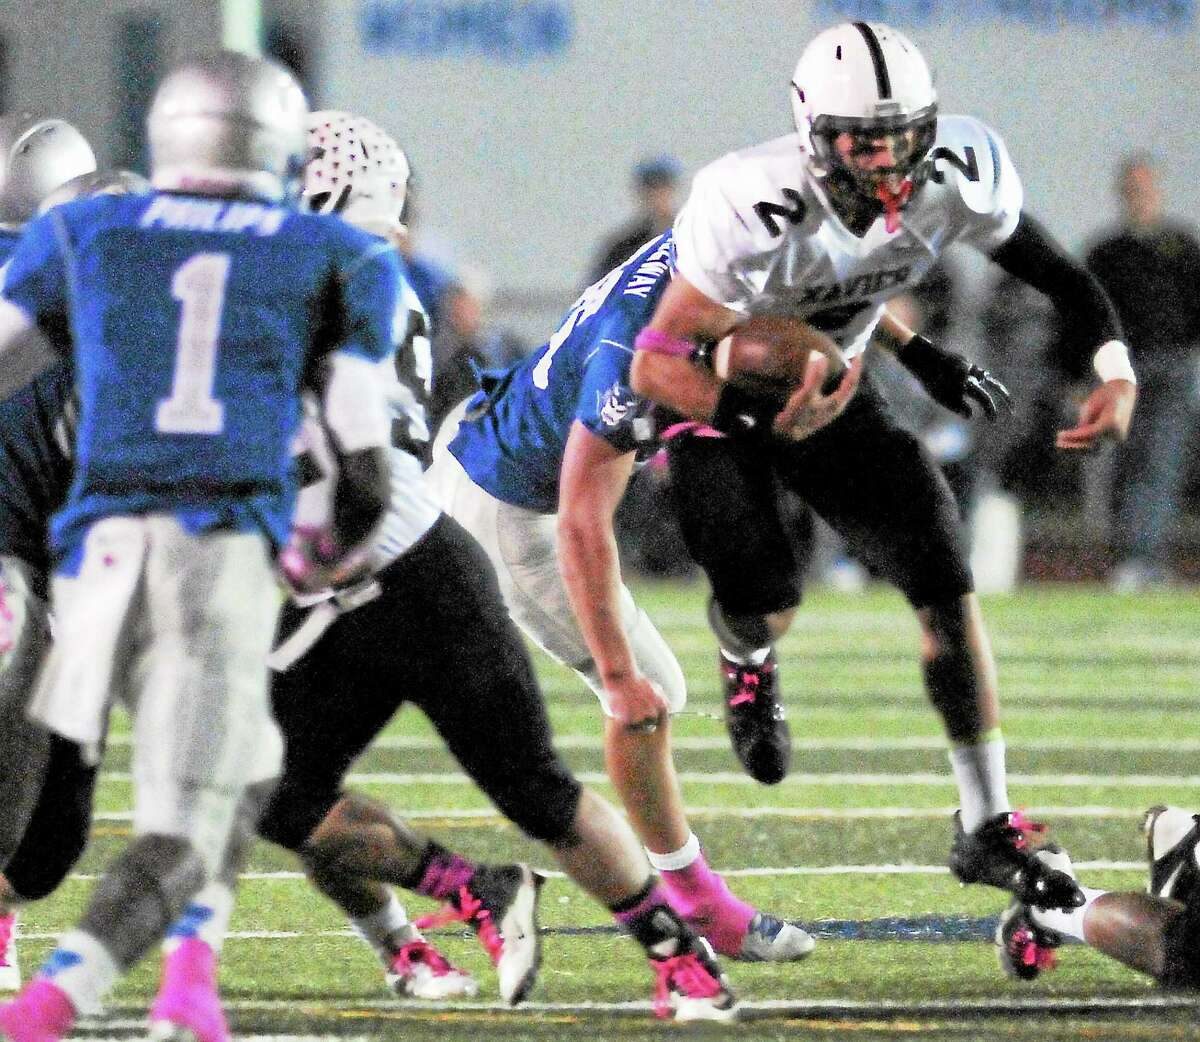 (Peter Hvizdak — Register)Xavier Quarterback Joseph Carbone breaks through the hole for a gain against West Haven H.S.during first quarter football action at West Haven High School Friday evening October 18, 2013.